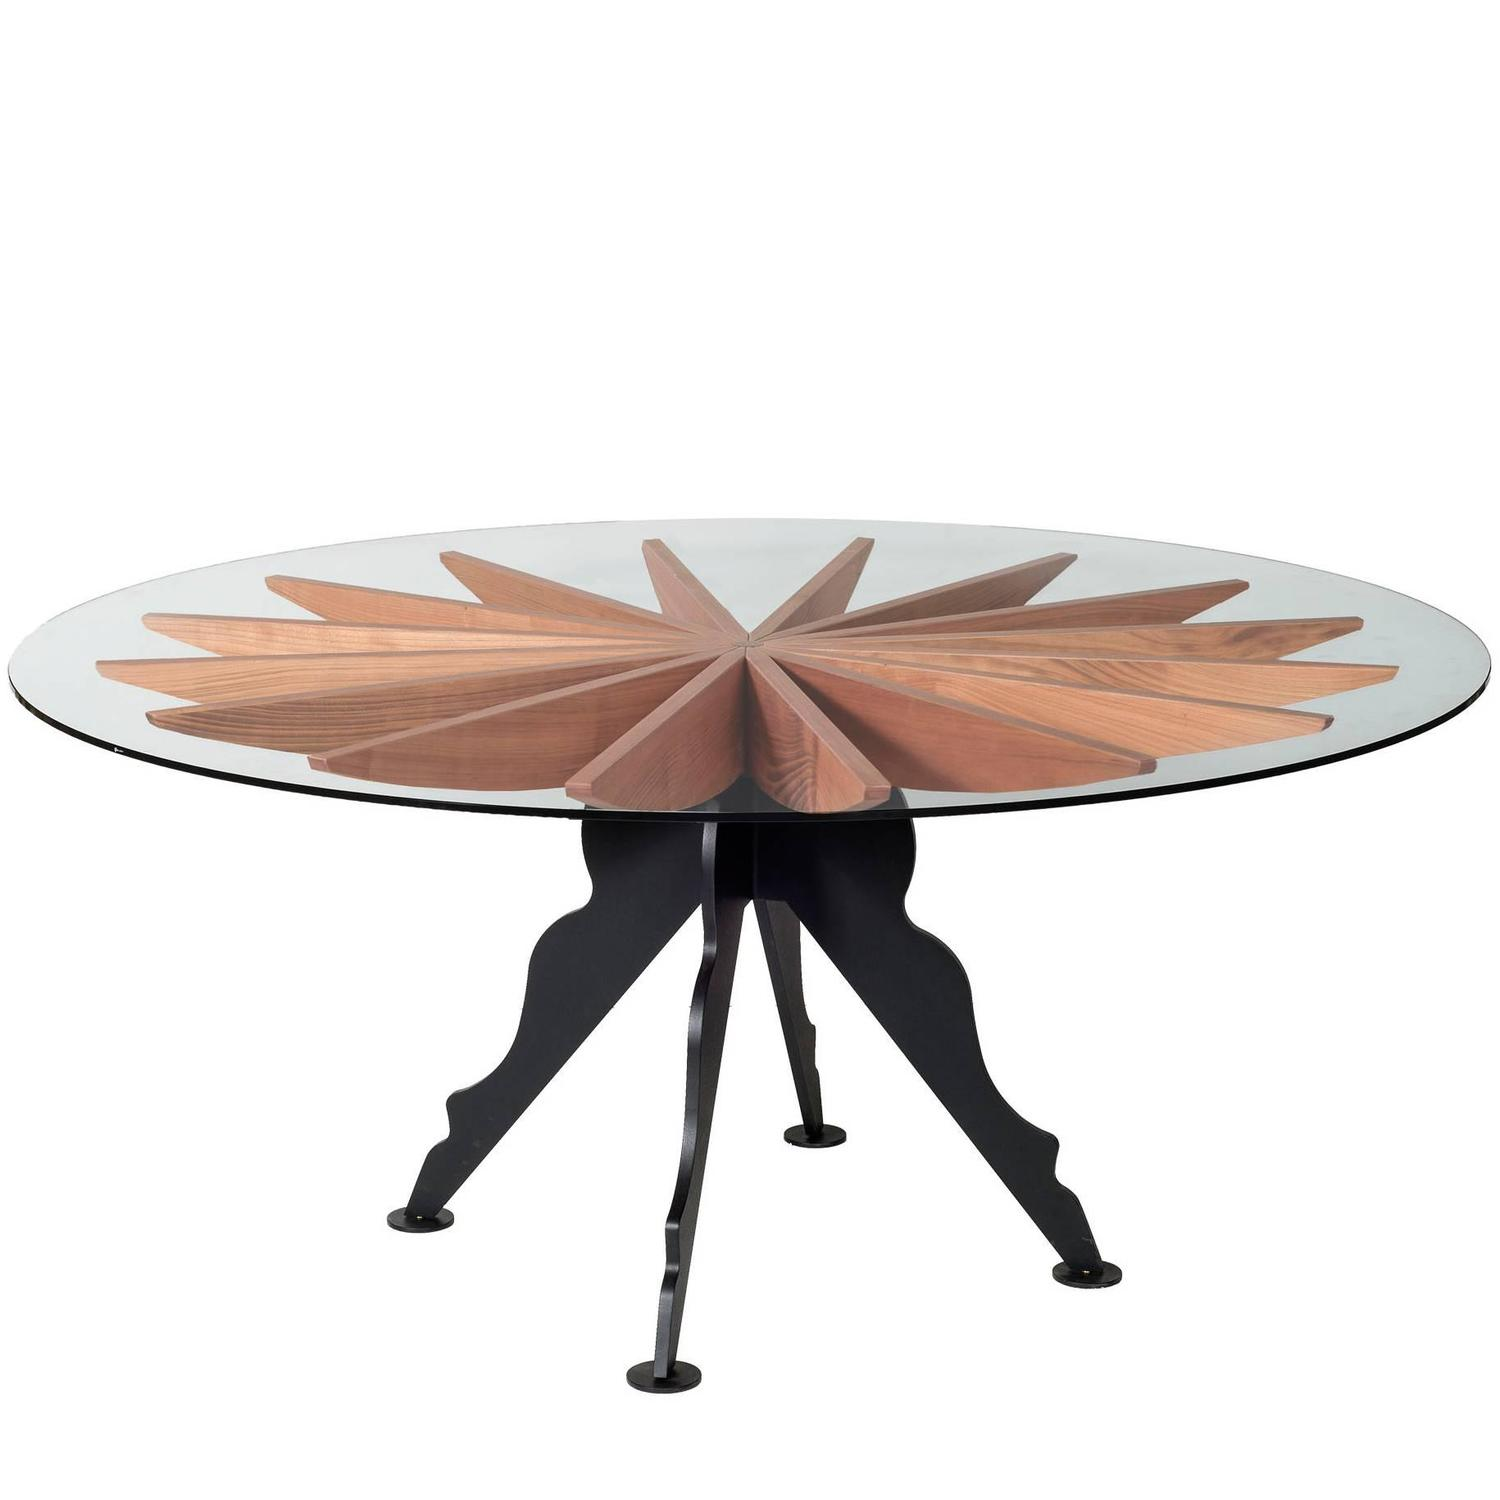 Italian Design Dining Tables : Explore 1stdibs Furniture Fine Art Jewelry & Watches Fashion Interiors ...